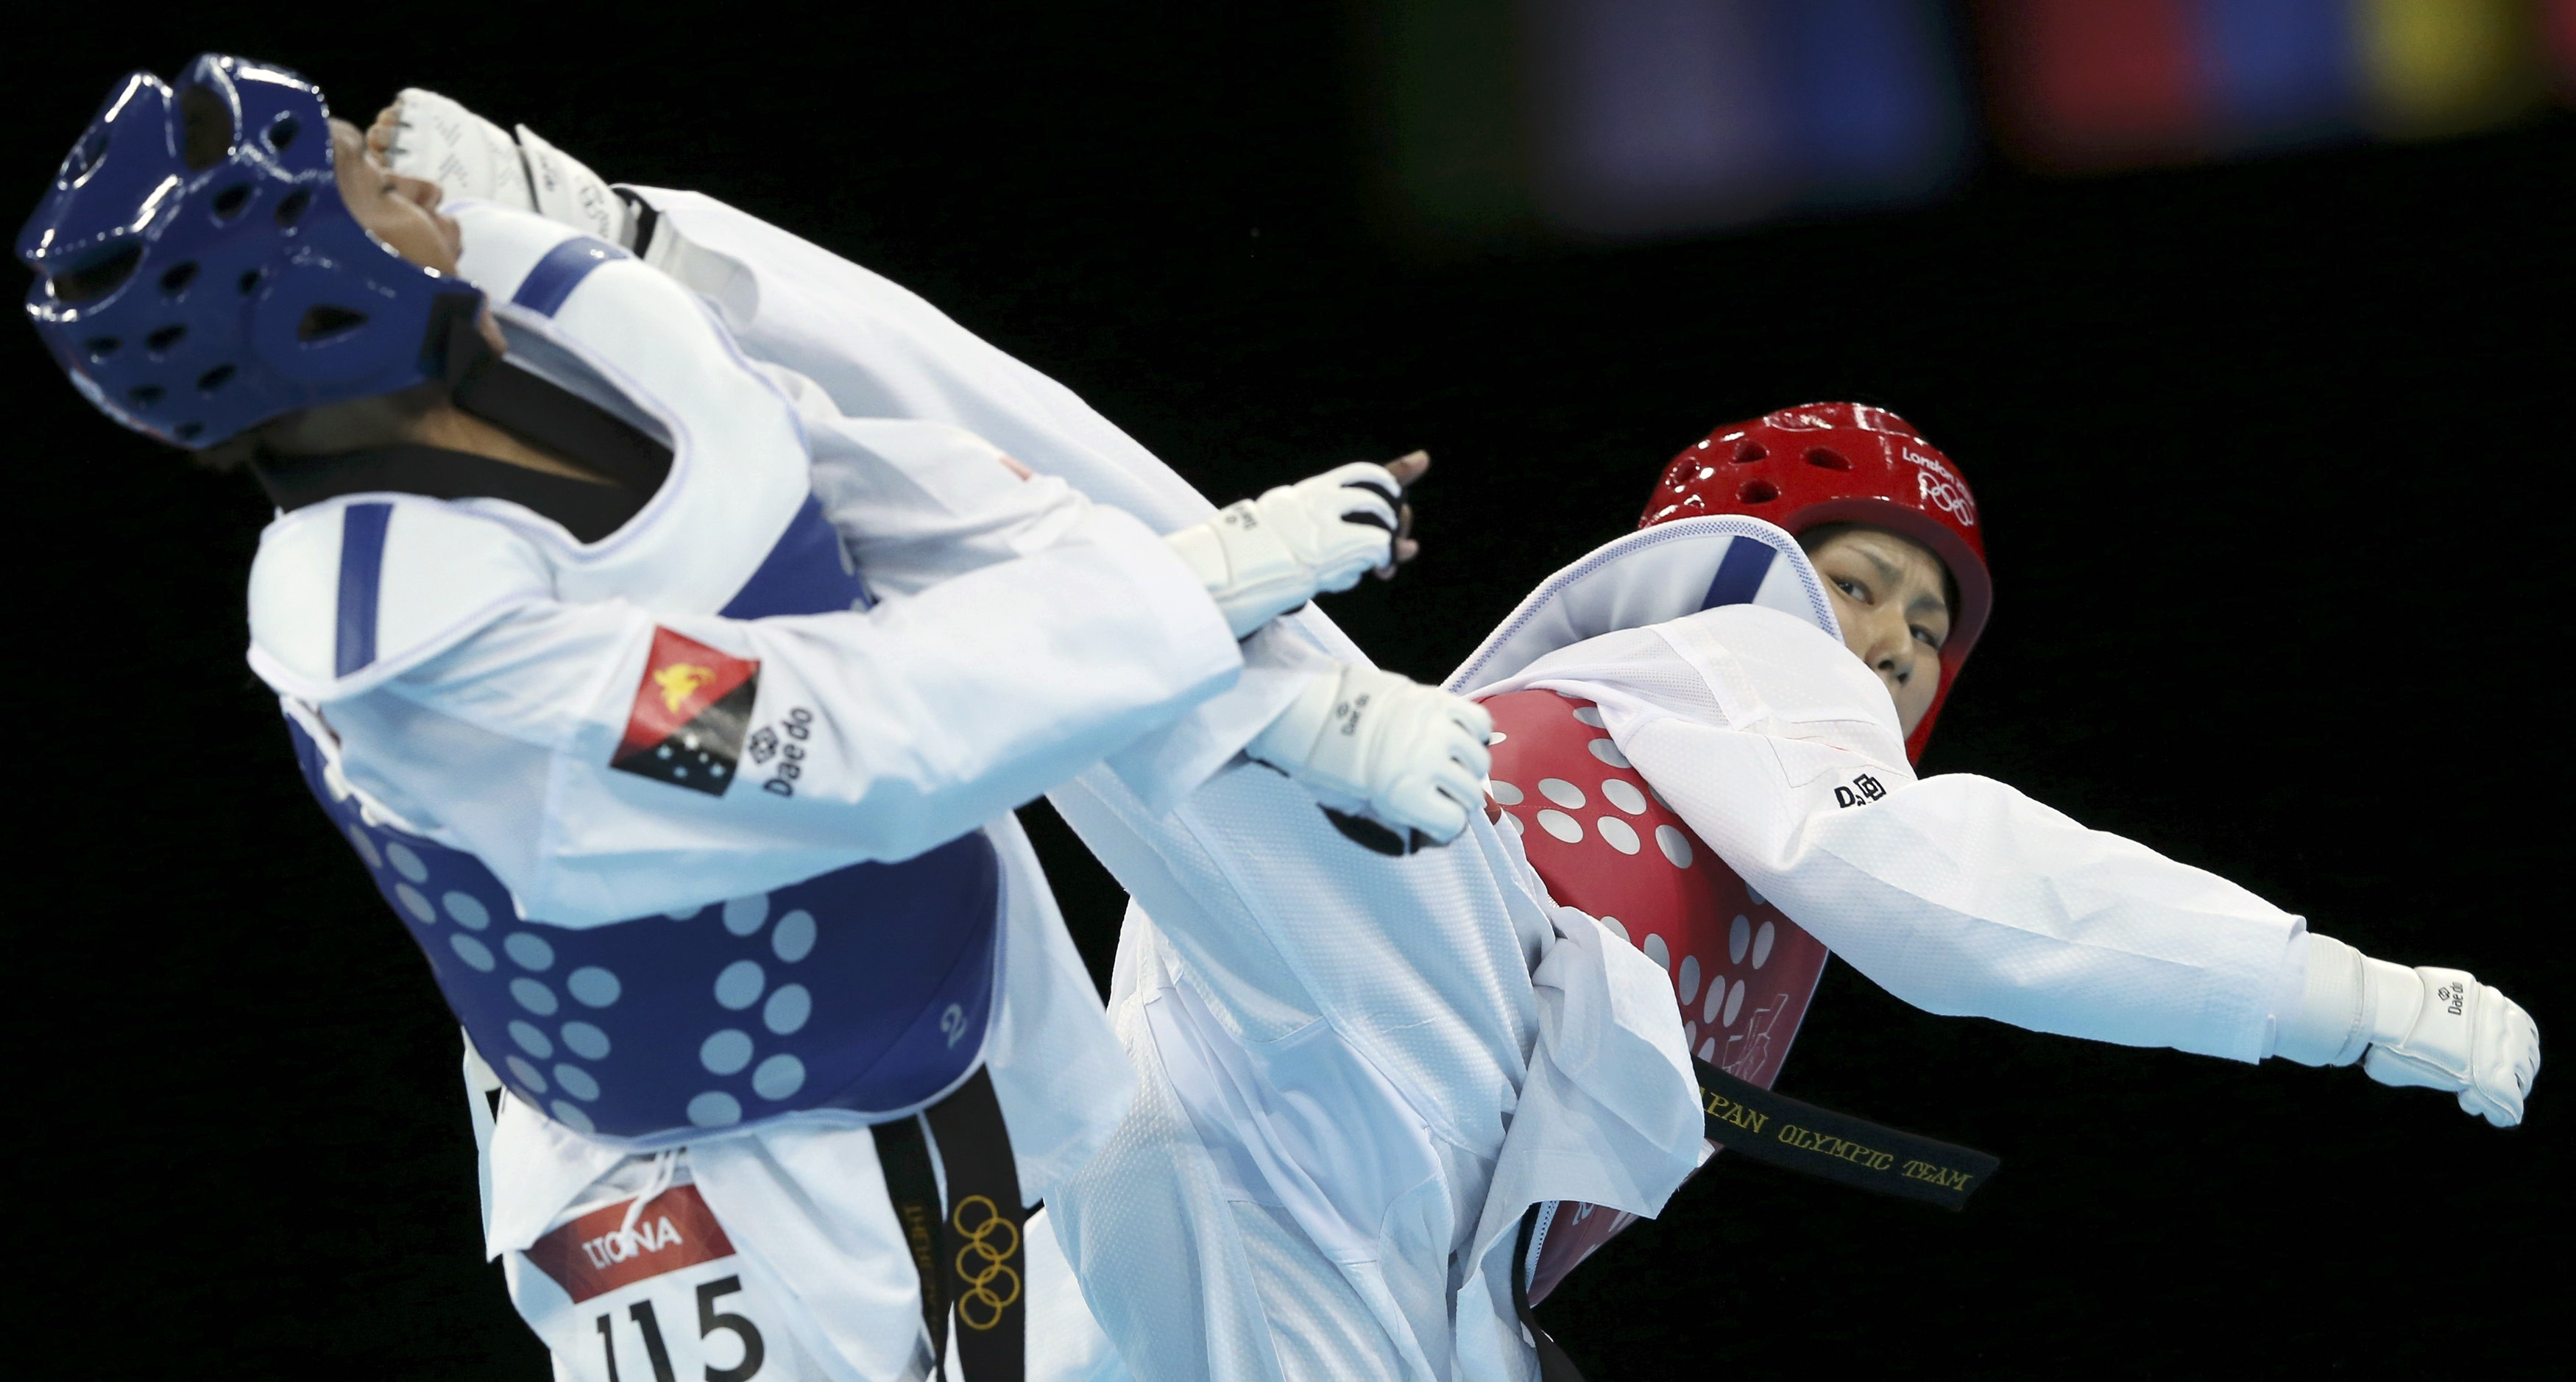 Japan's Erika Kasahara fights against Papua New Guinea's Theresa Tona during their women's -49kg preliminary round taekwondo match at the London Olympic Games